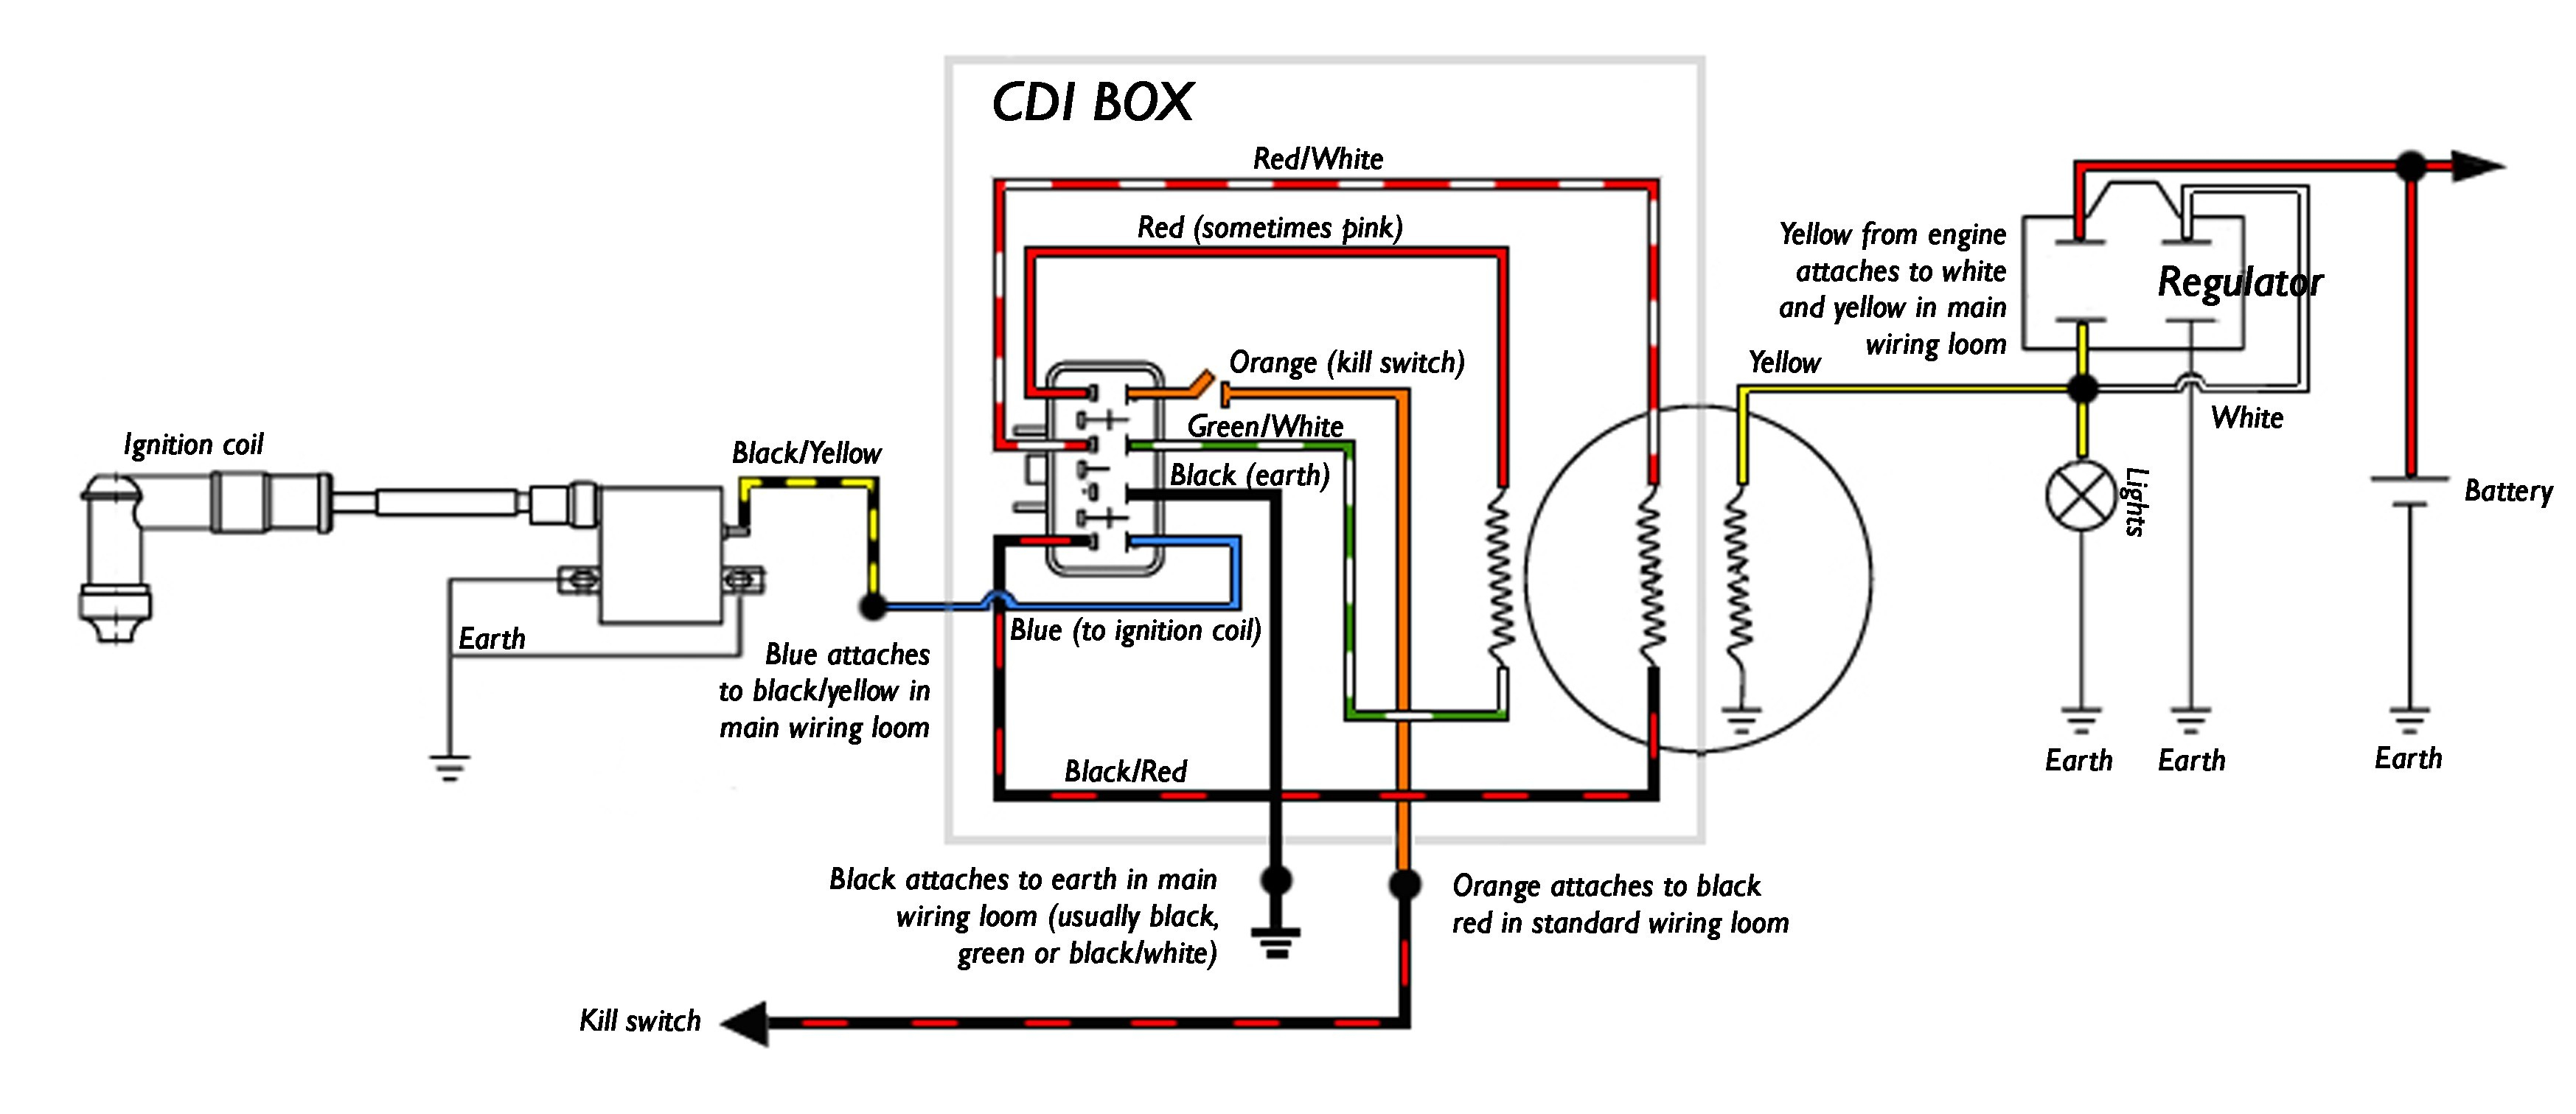 5 Pin Cdi Wiring Diagram - Panoramabypatysesma - Cdi Wiring Diagram